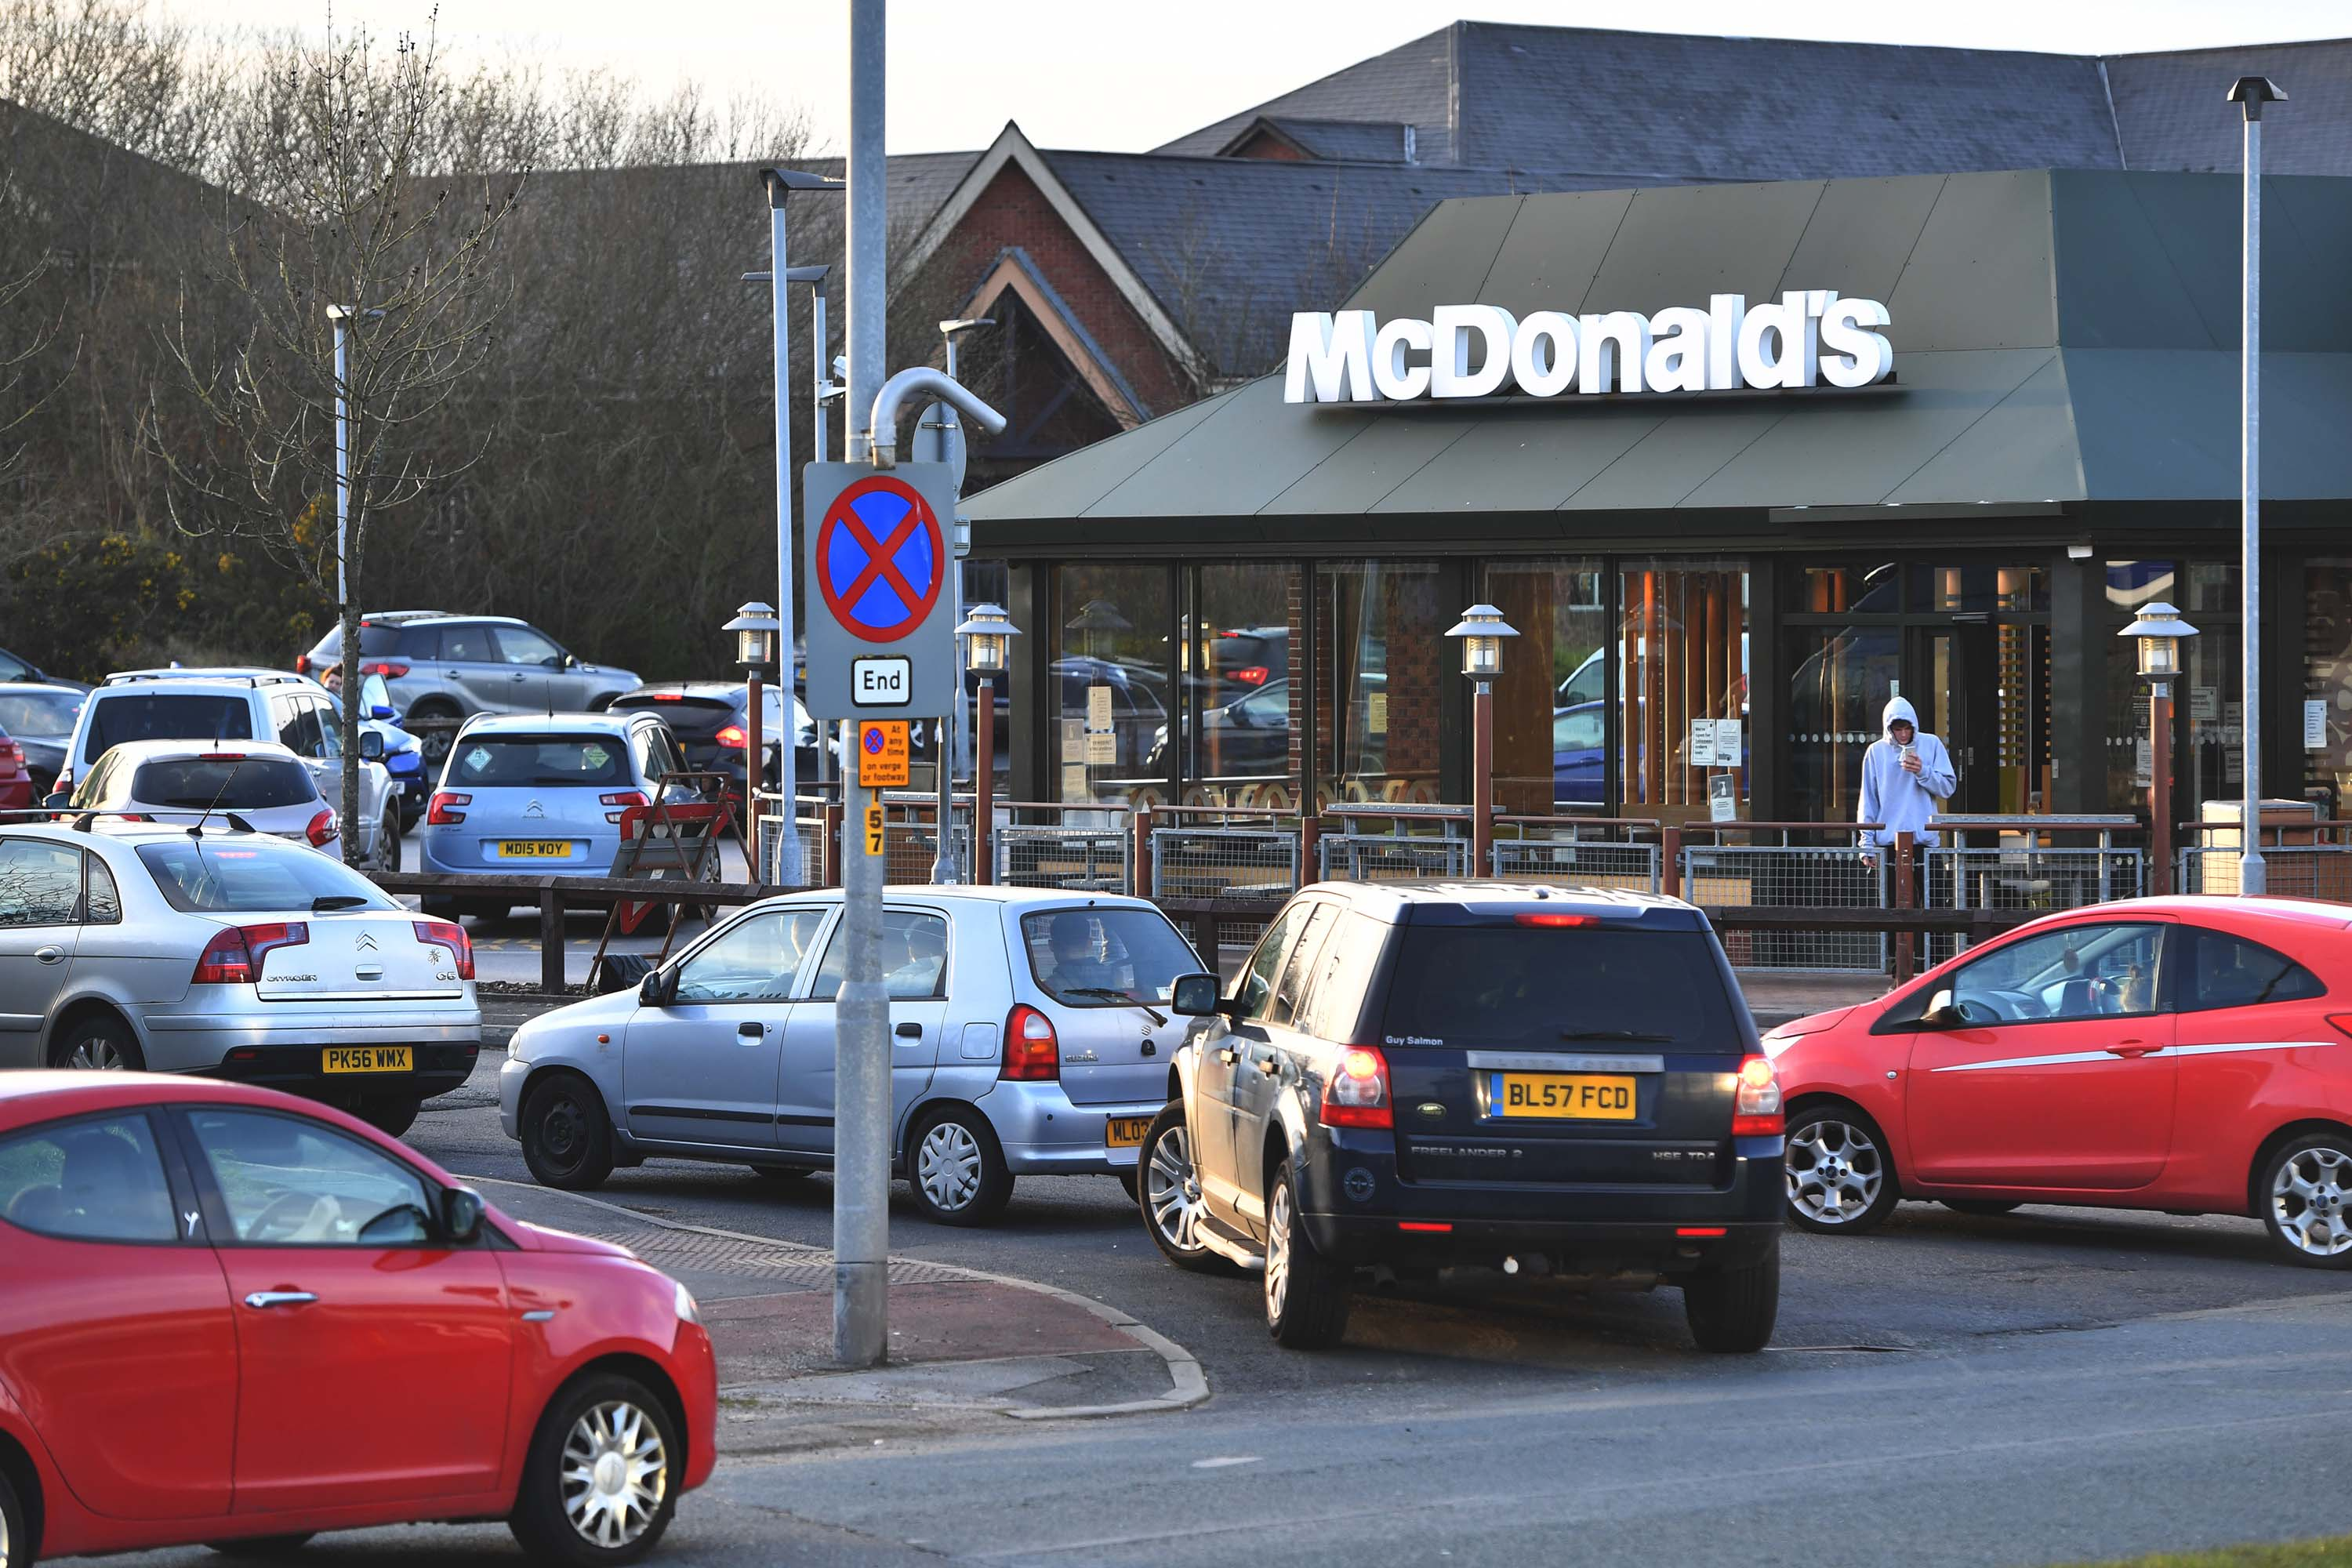 People queue outside a McDonalds restaurant in Hattersley, England, on March 23, after the chain announced it would close its restaurants.